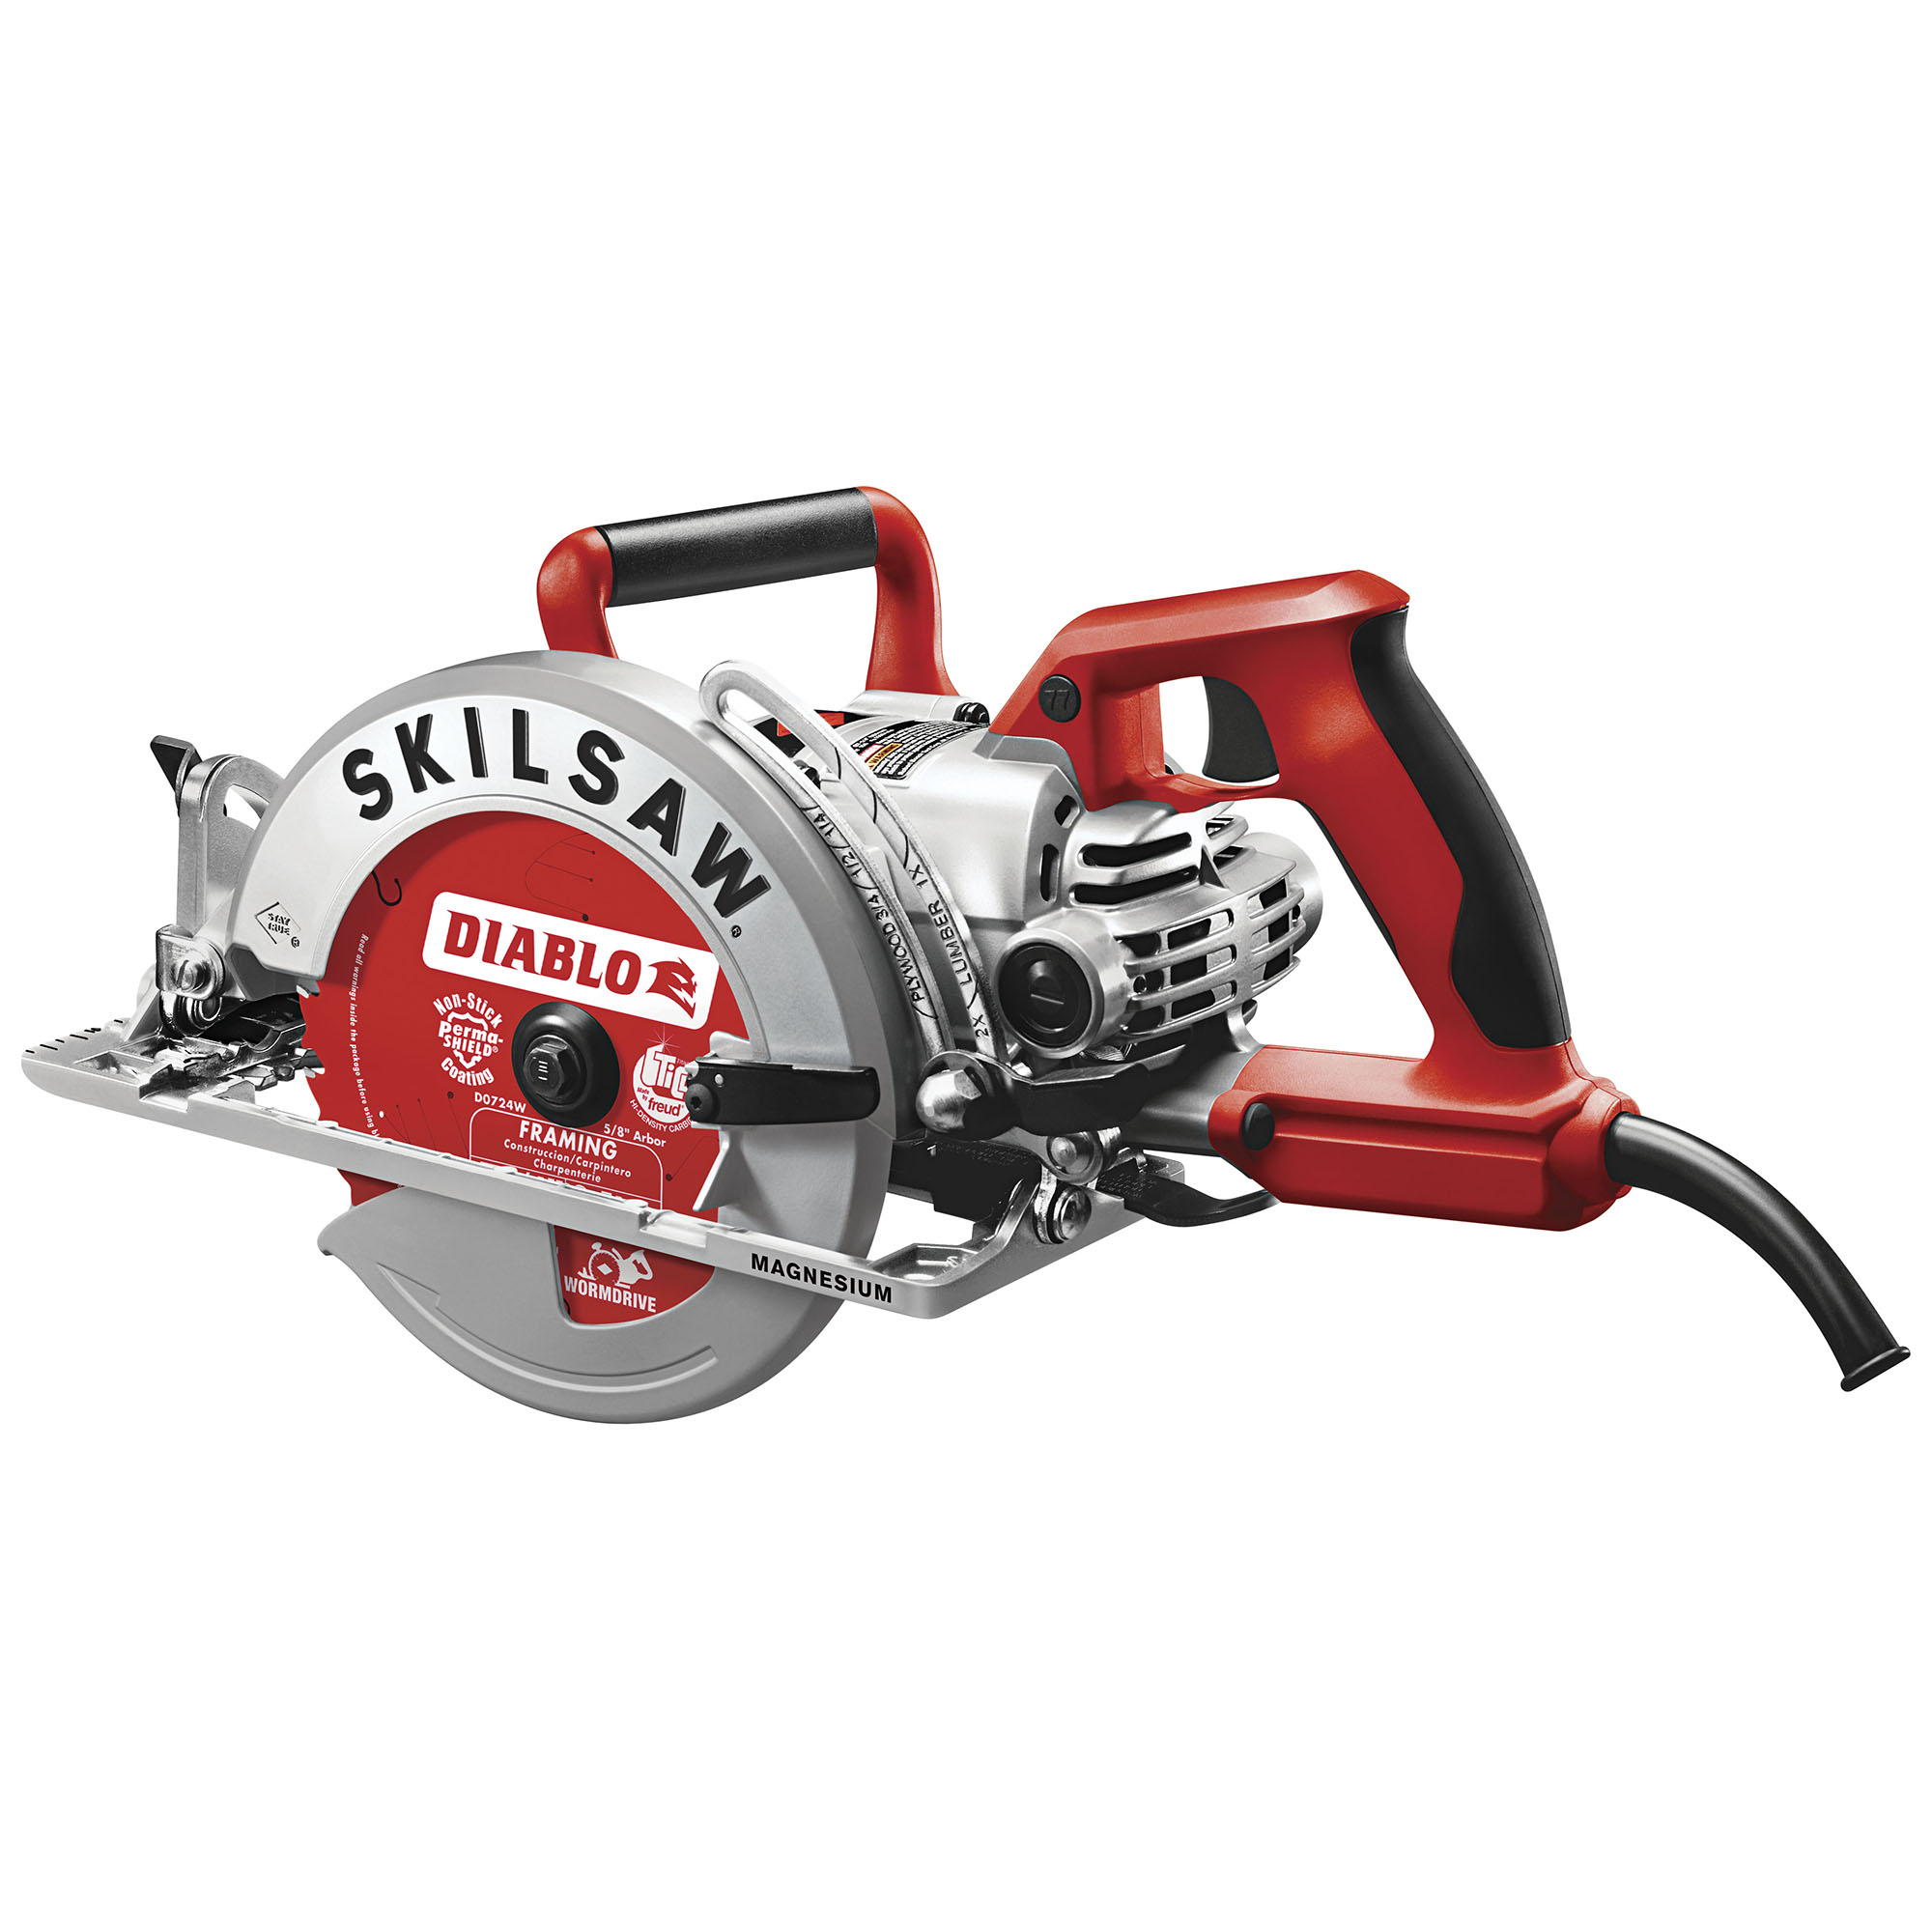 SKILSAW SPT77WML-22 Worm Drive Circular Saw,7-1/4 In,15A